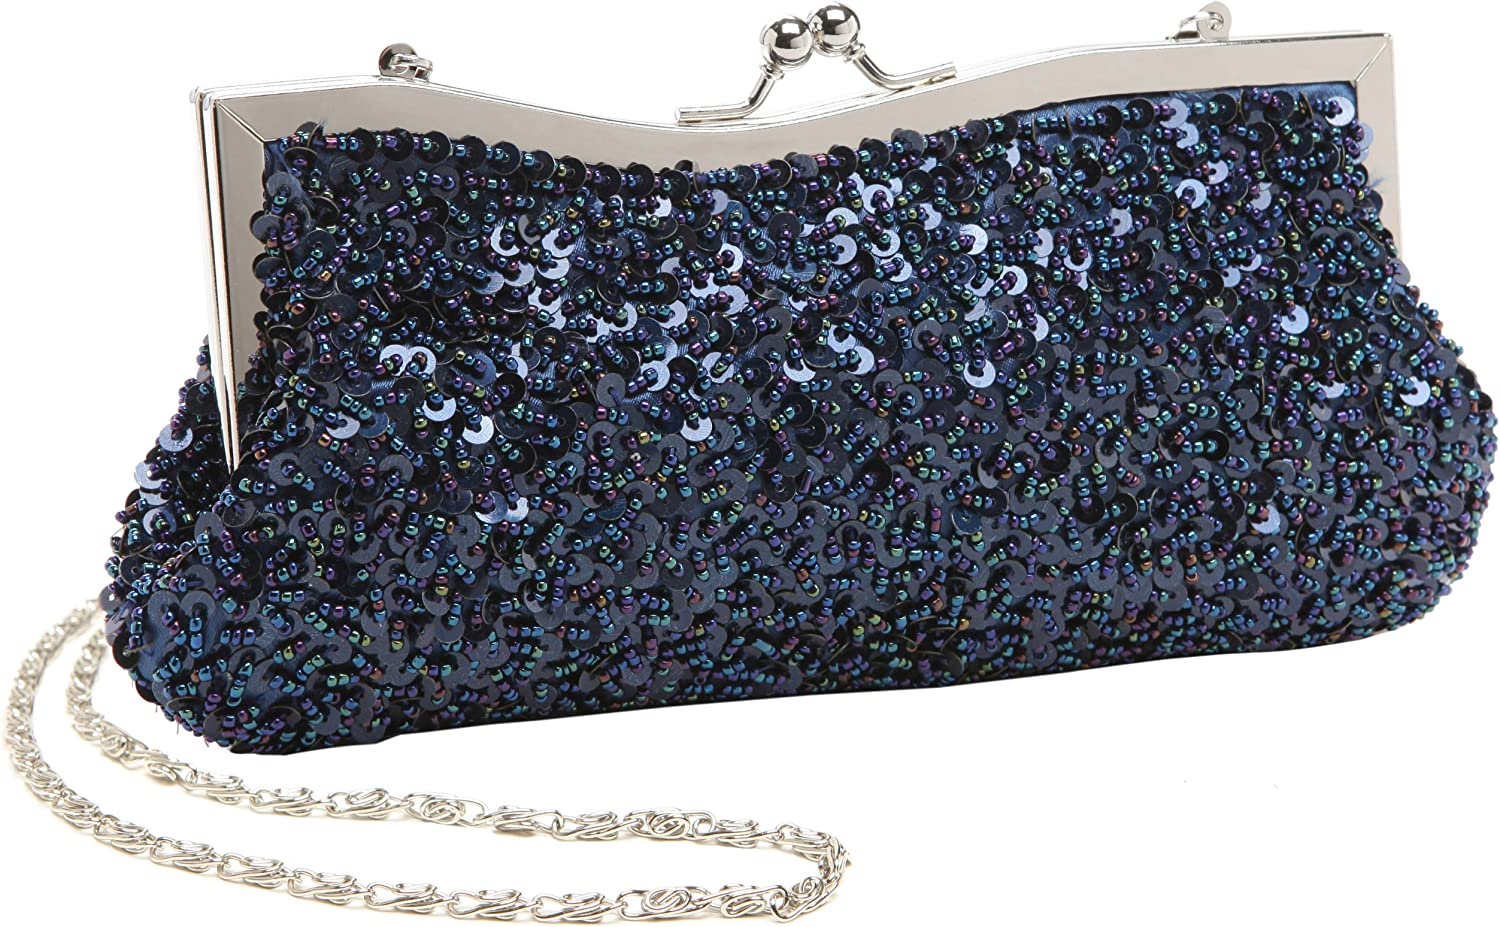 Dazzling Hand Sequined Baguette Style Evening Clutch Purse w Detachable Chains